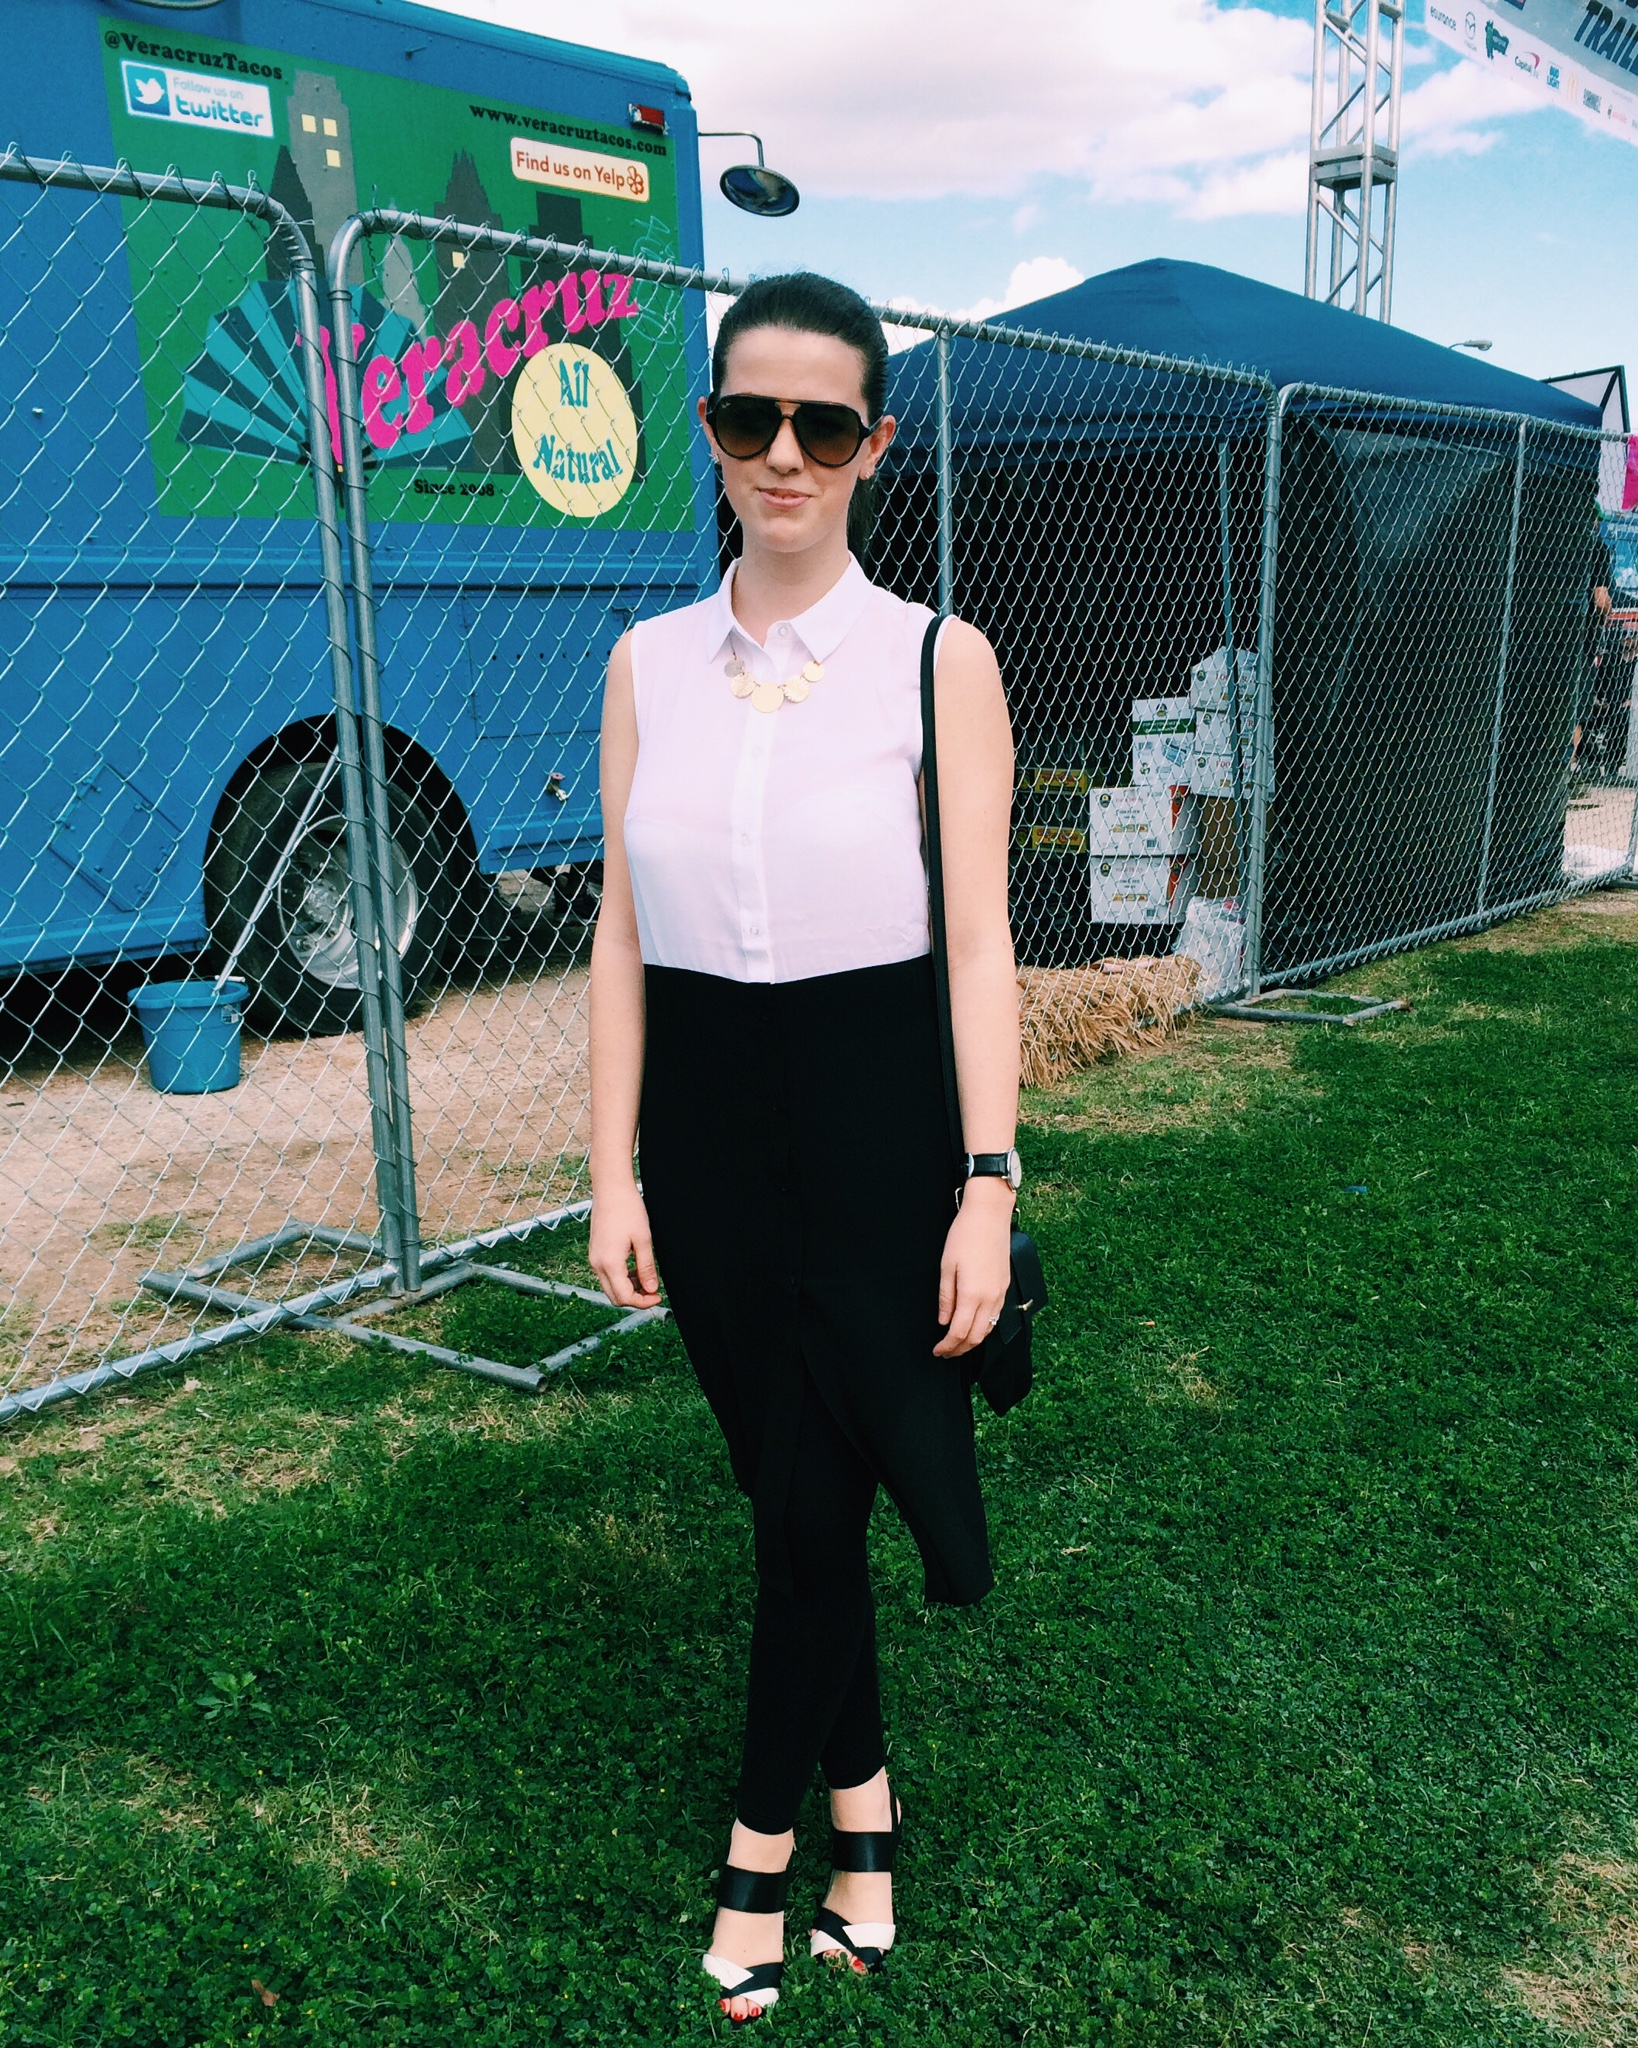 Raquel Greer Gordian exhibits Lauren Dyer's outfit for SXSW.